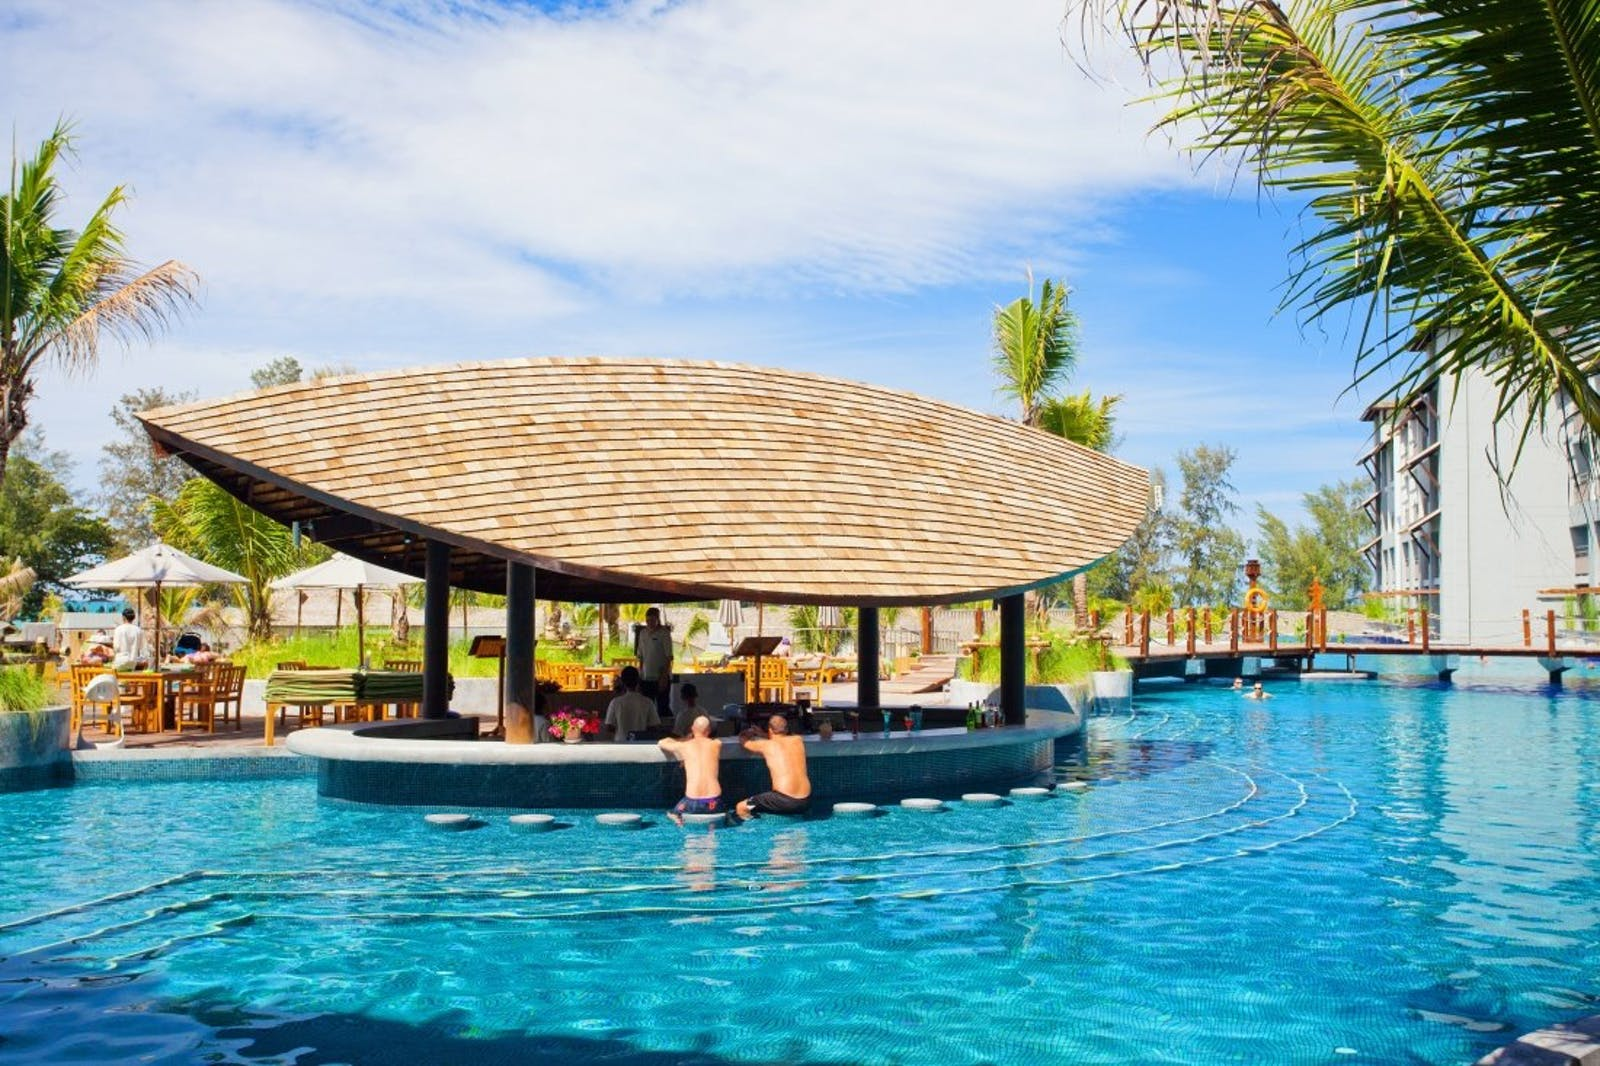 Pool Bar at Mai Khao Lak Beach Resort & Spa